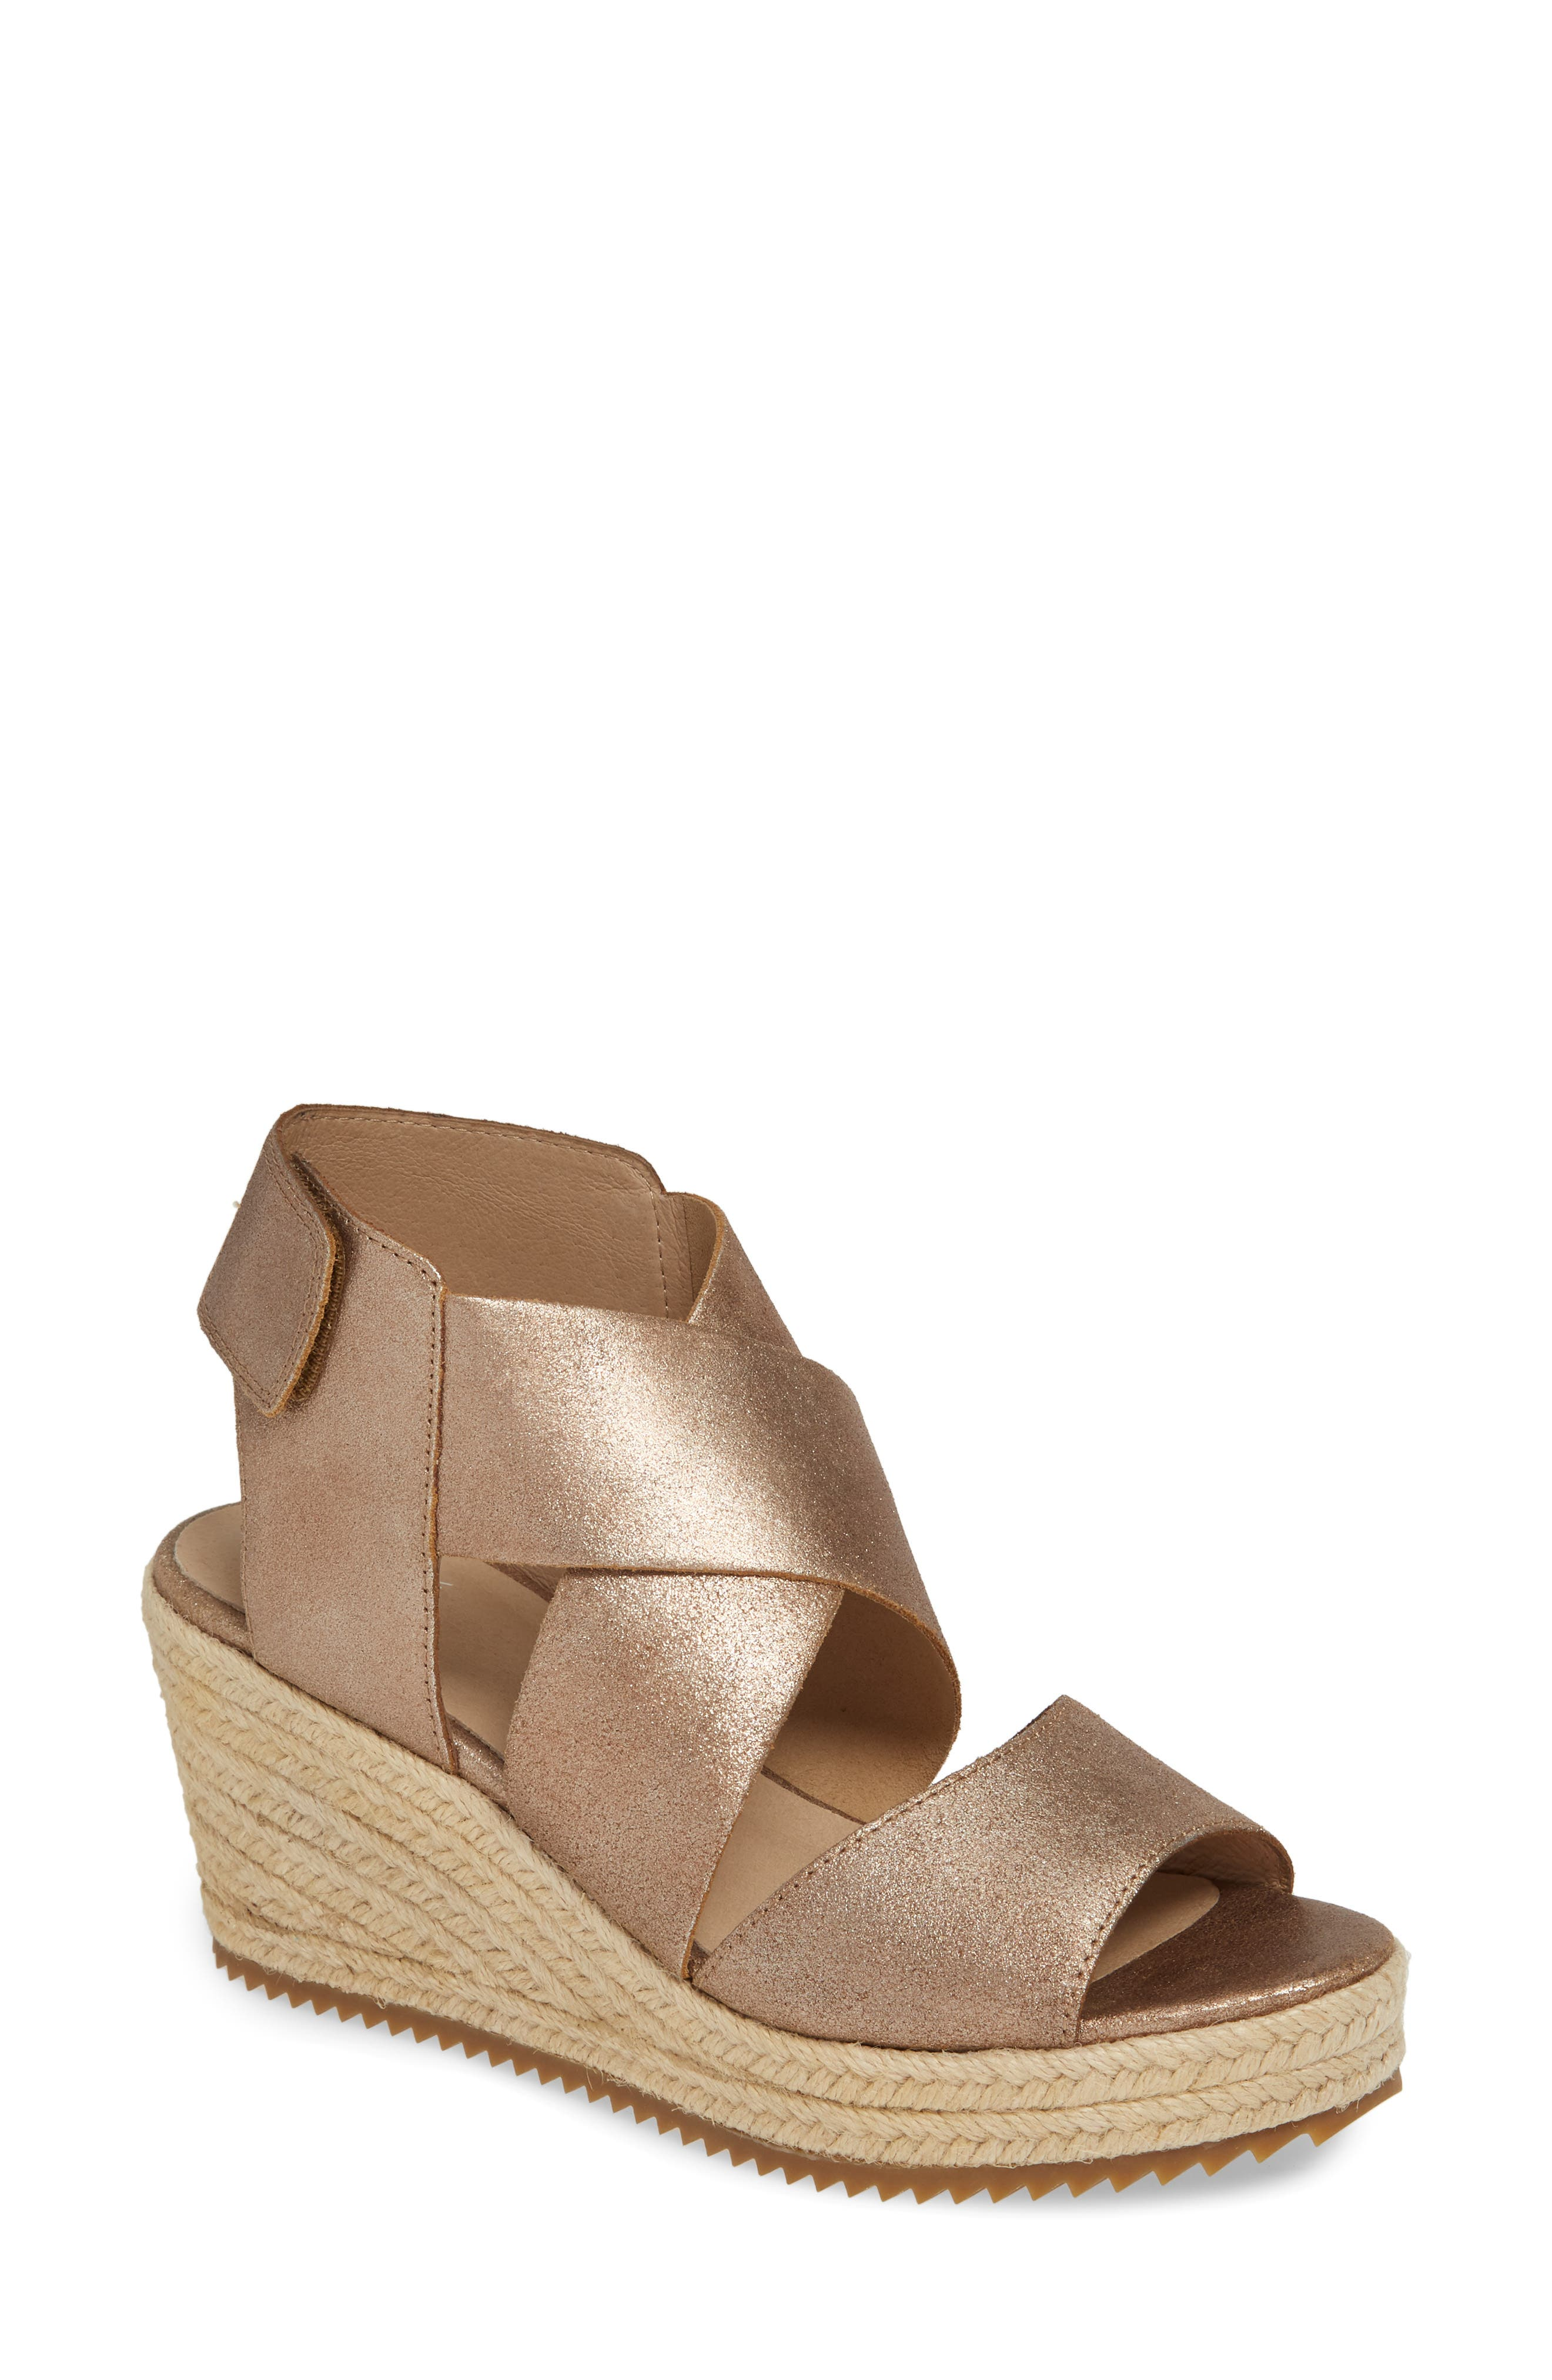 EILEEN FISHER,                             'Willow' Espadrille Wedge Sandal,                             Main thumbnail 1, color,                             041